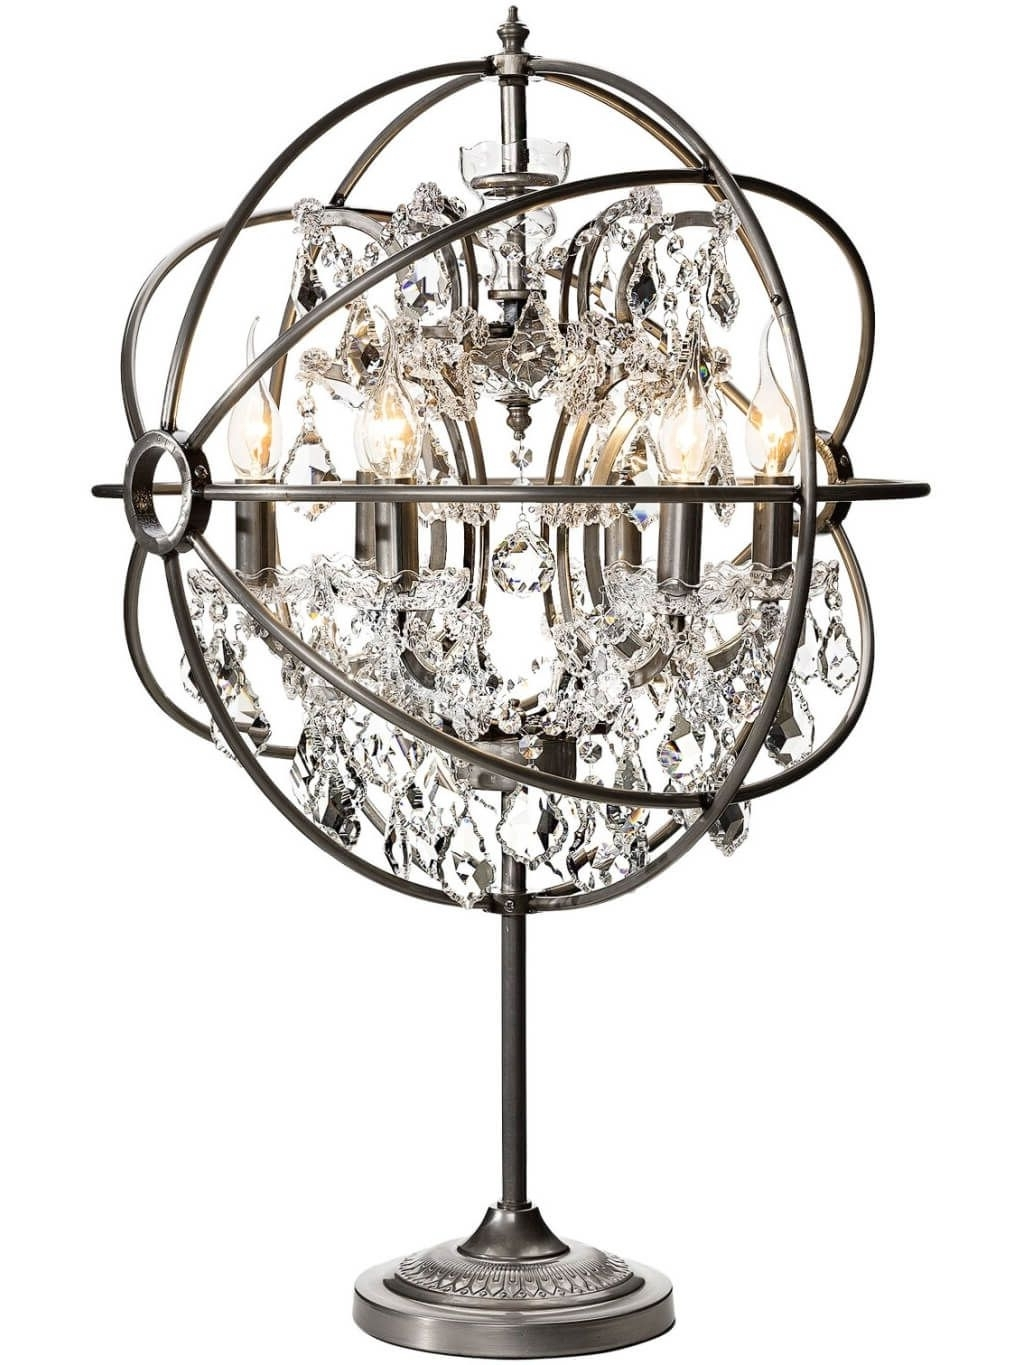 Small Chandelier Table Lamps Throughout Popular Lighting: Enticing Small Chandelier Table Lamp With Aluminum Base (View 6 of 20)